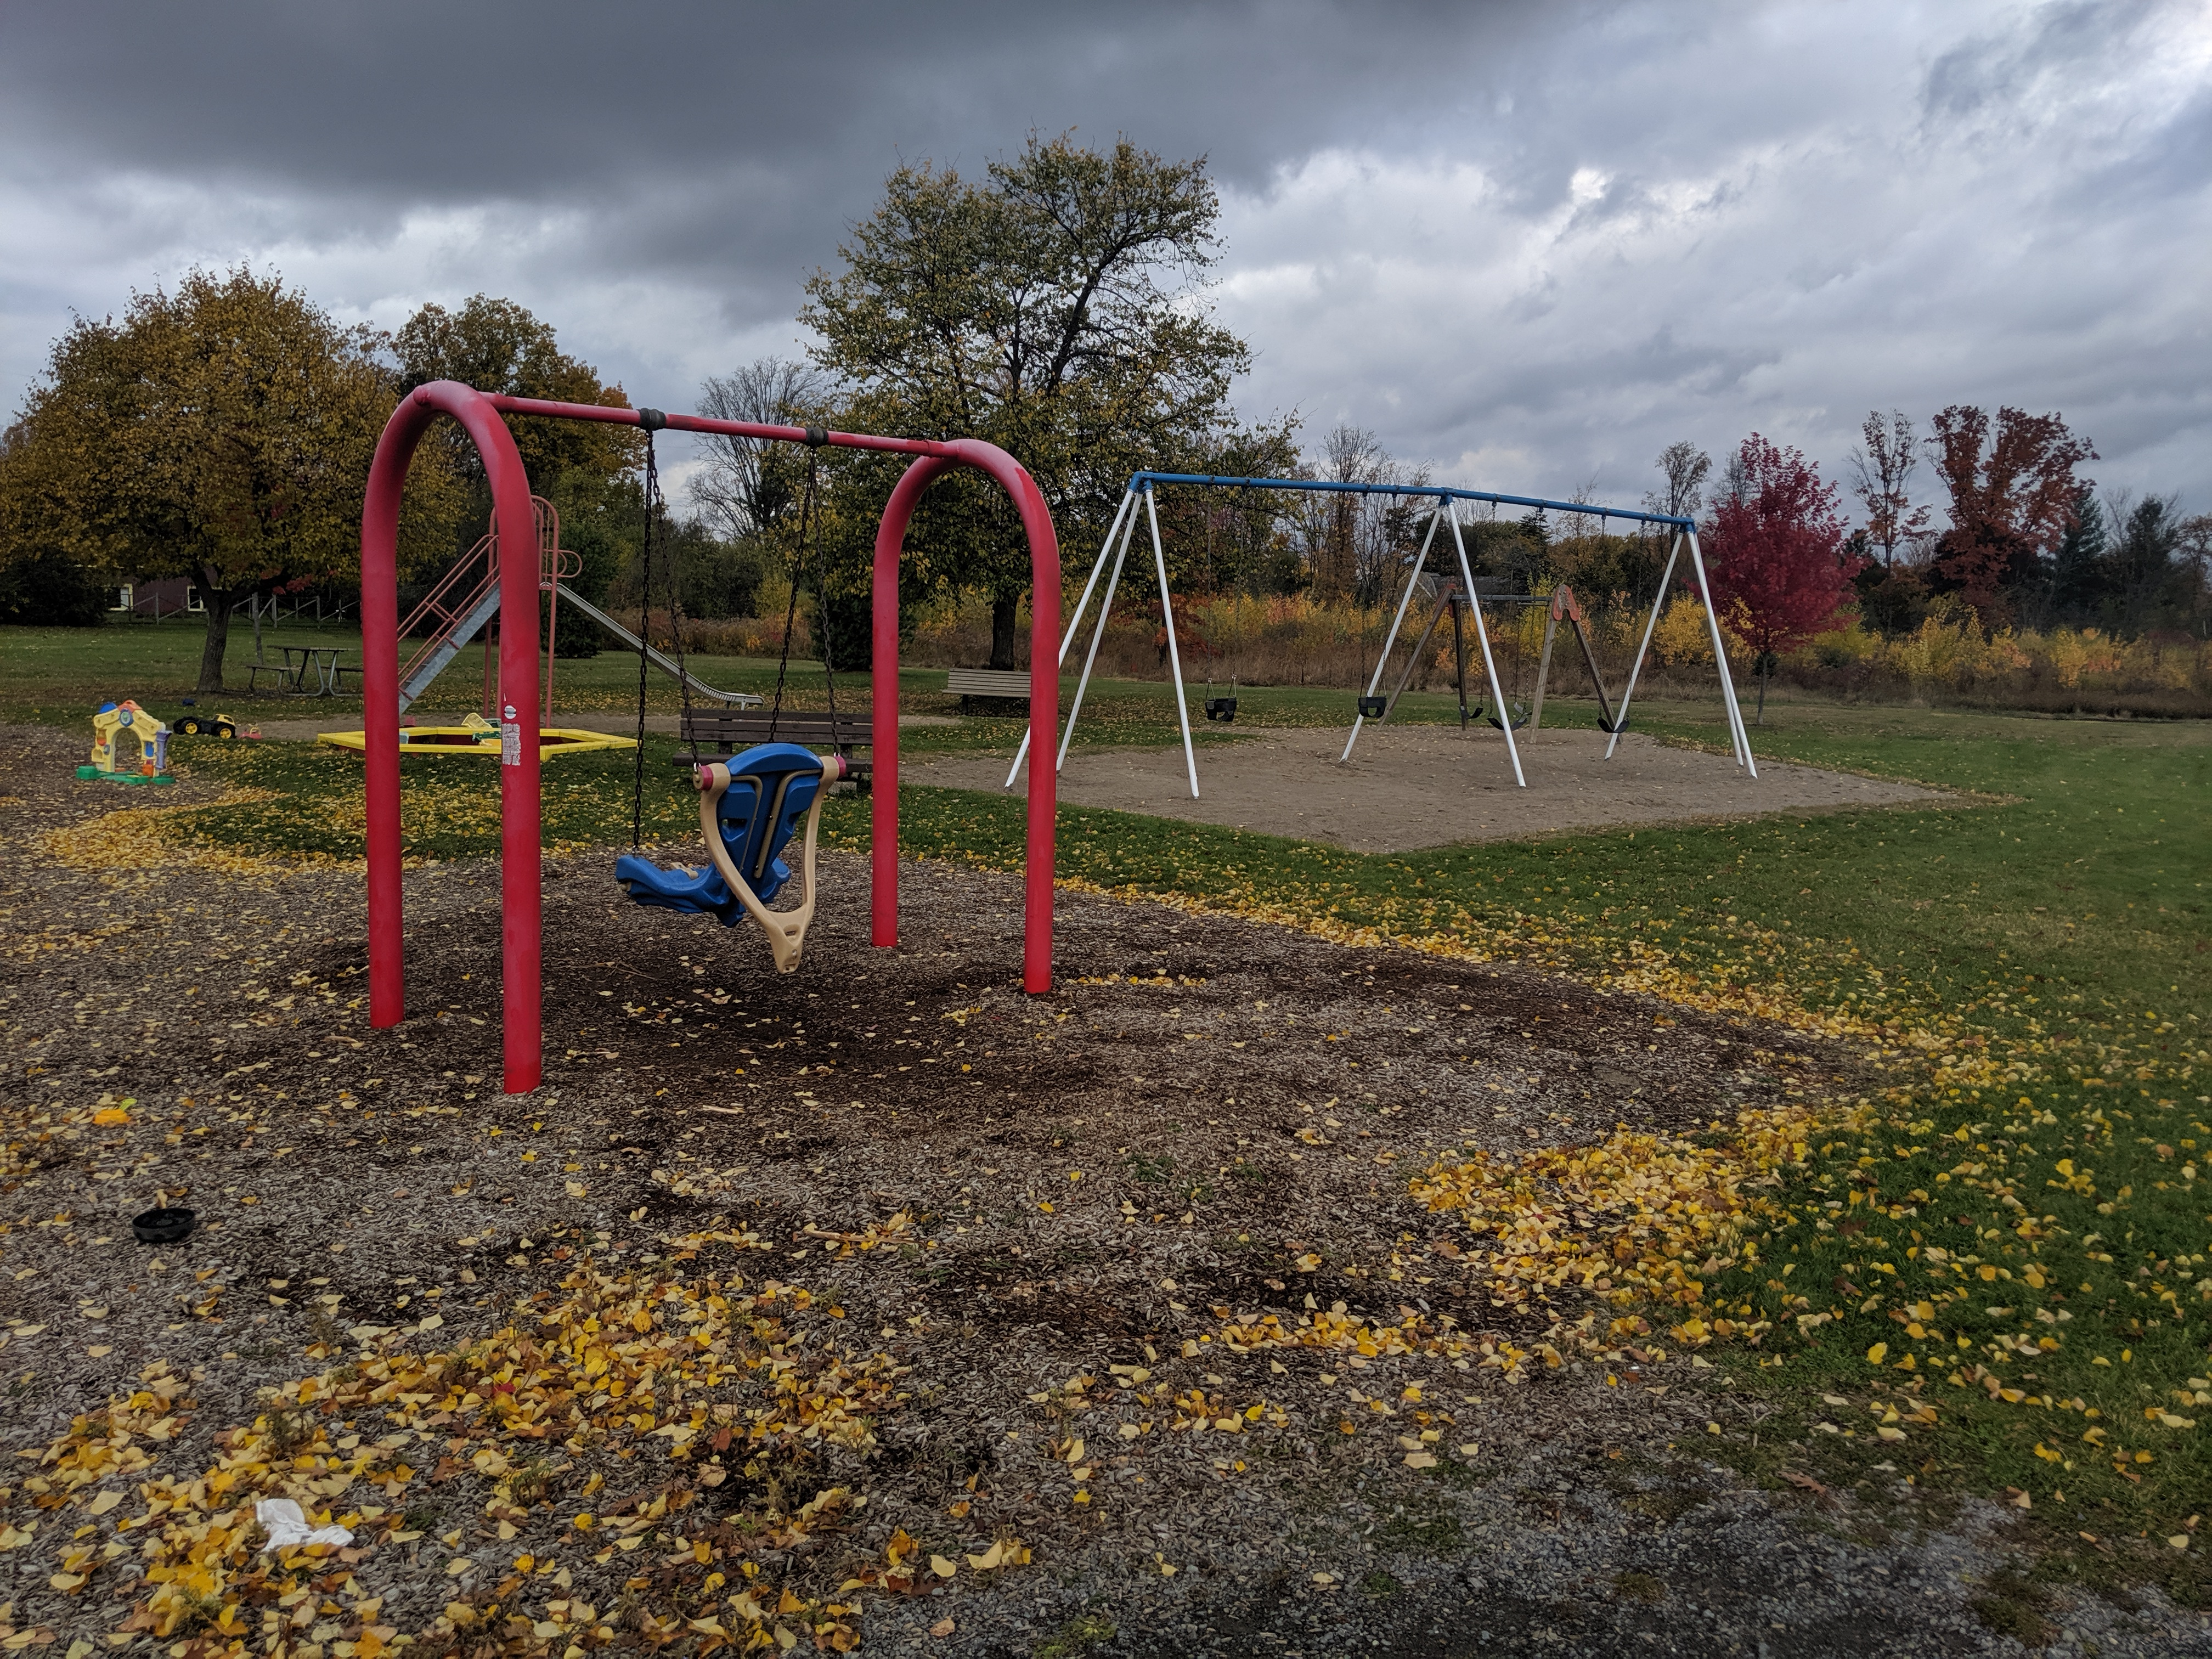 Billings Park swing set